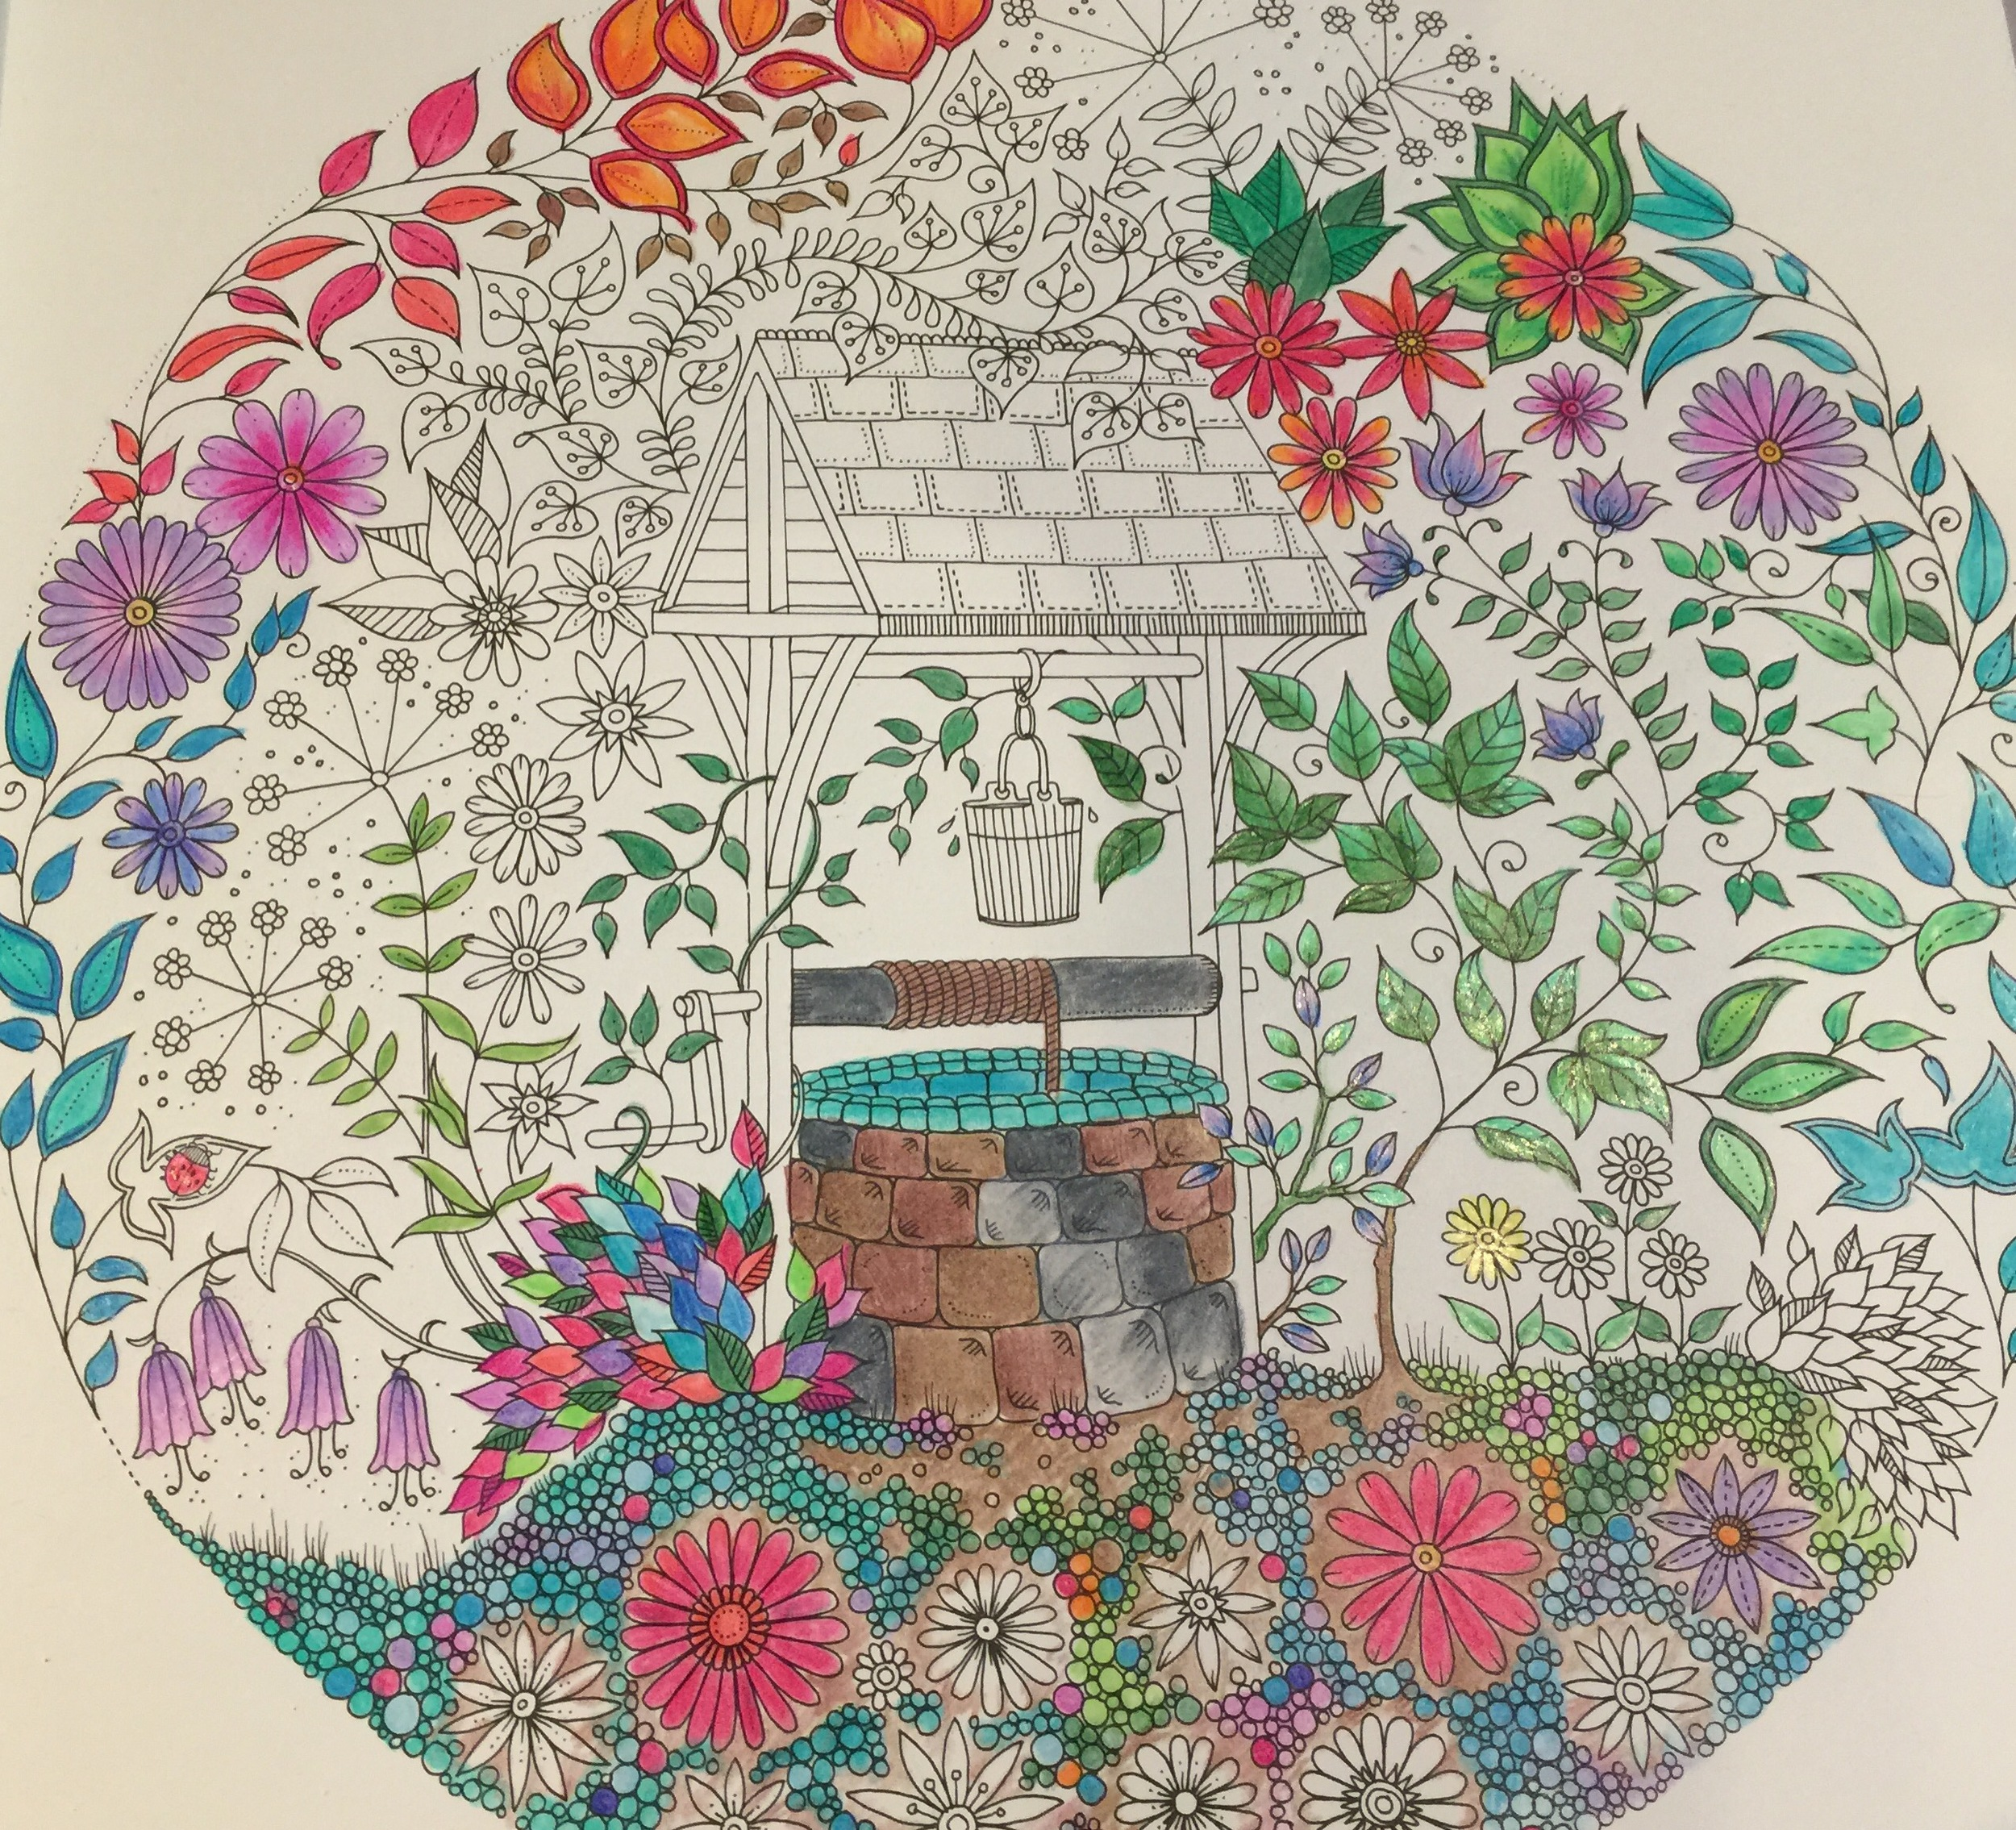 My work in progress with Coloring Pencils, Secret Garden: an inky treasure hunt and coloring book by Johanna basford